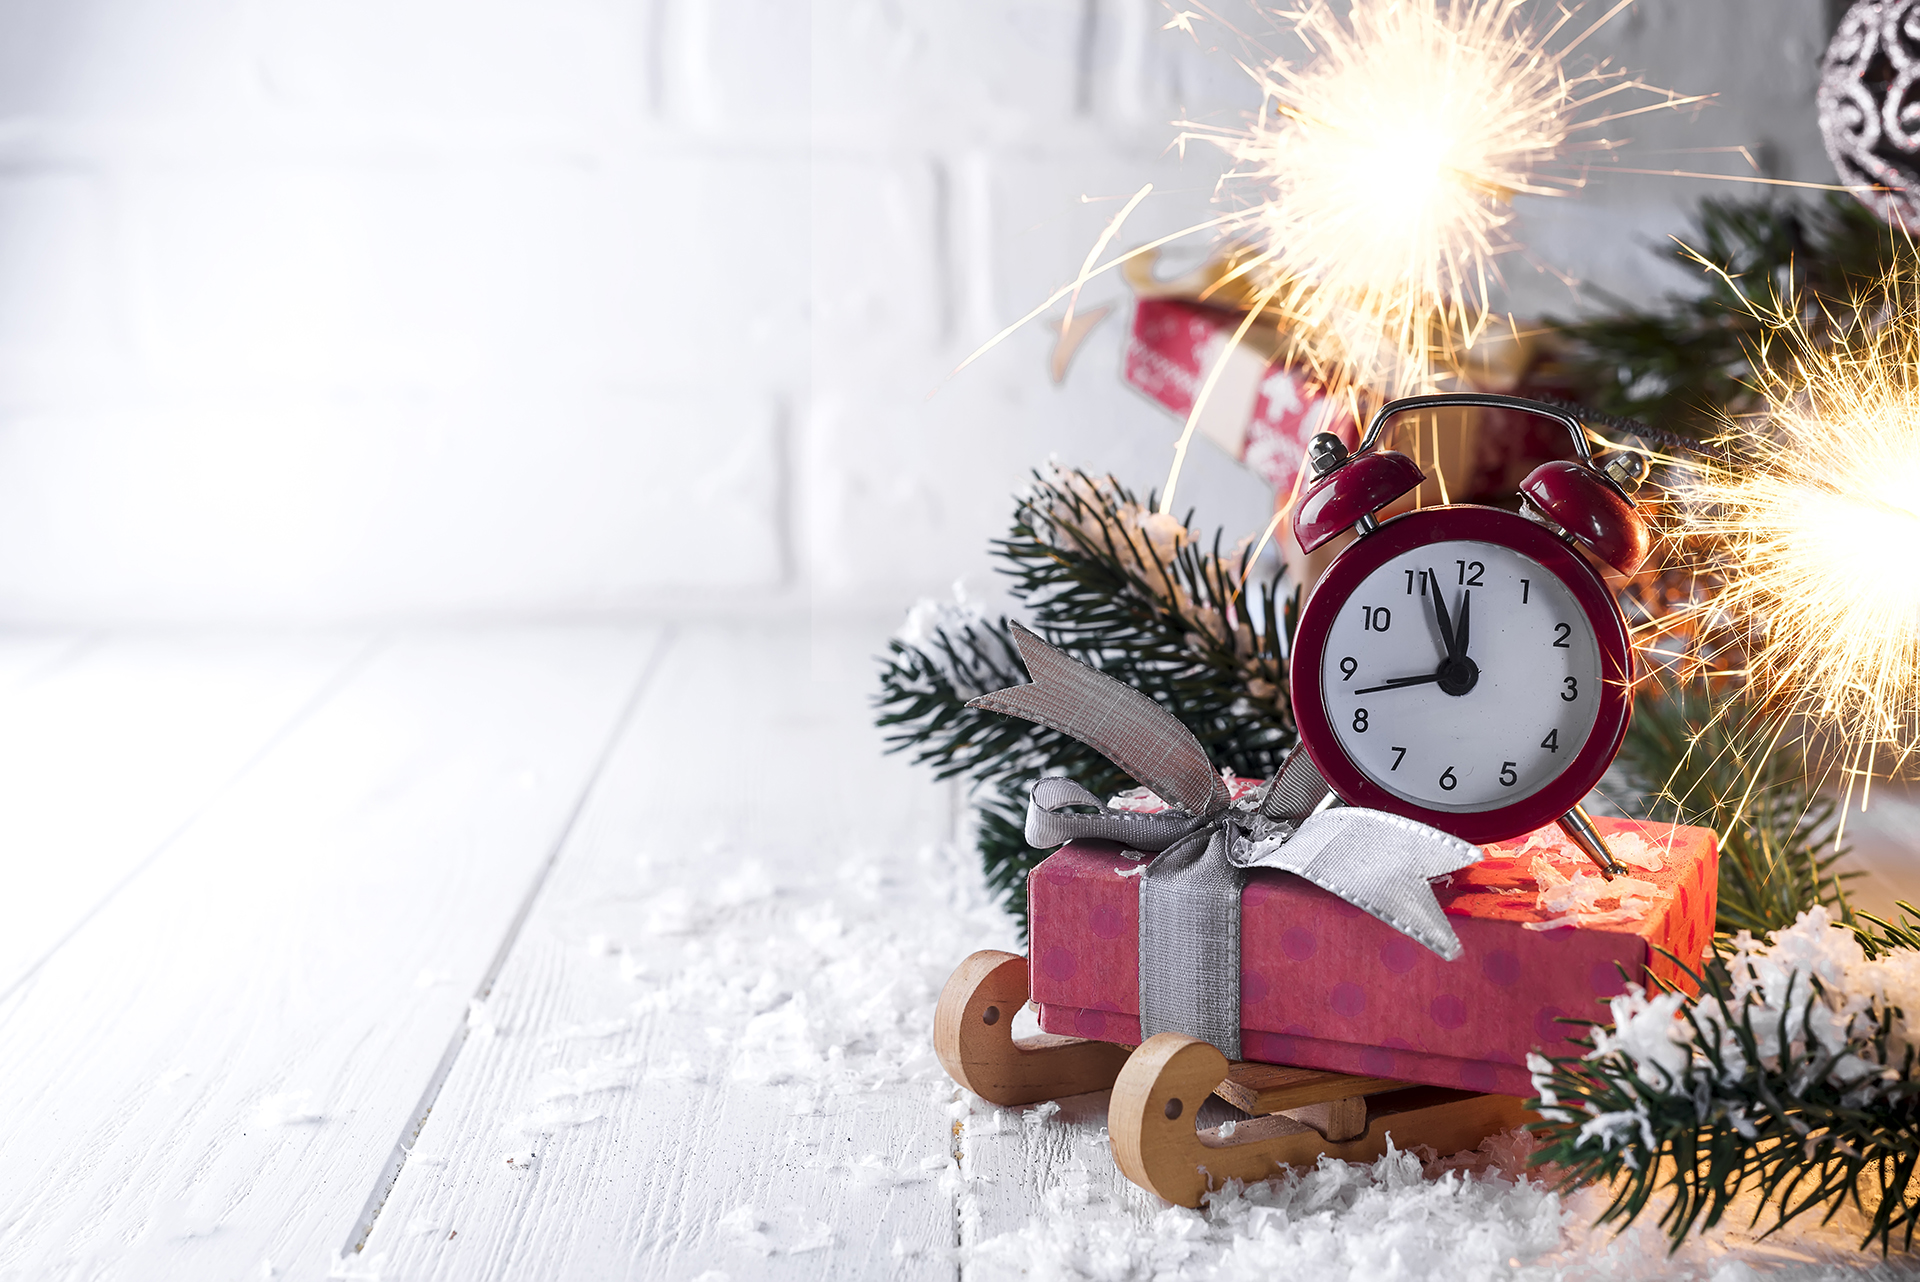 new-years-clock-with-burning-bengal-fire-P2ANJGY.jpg